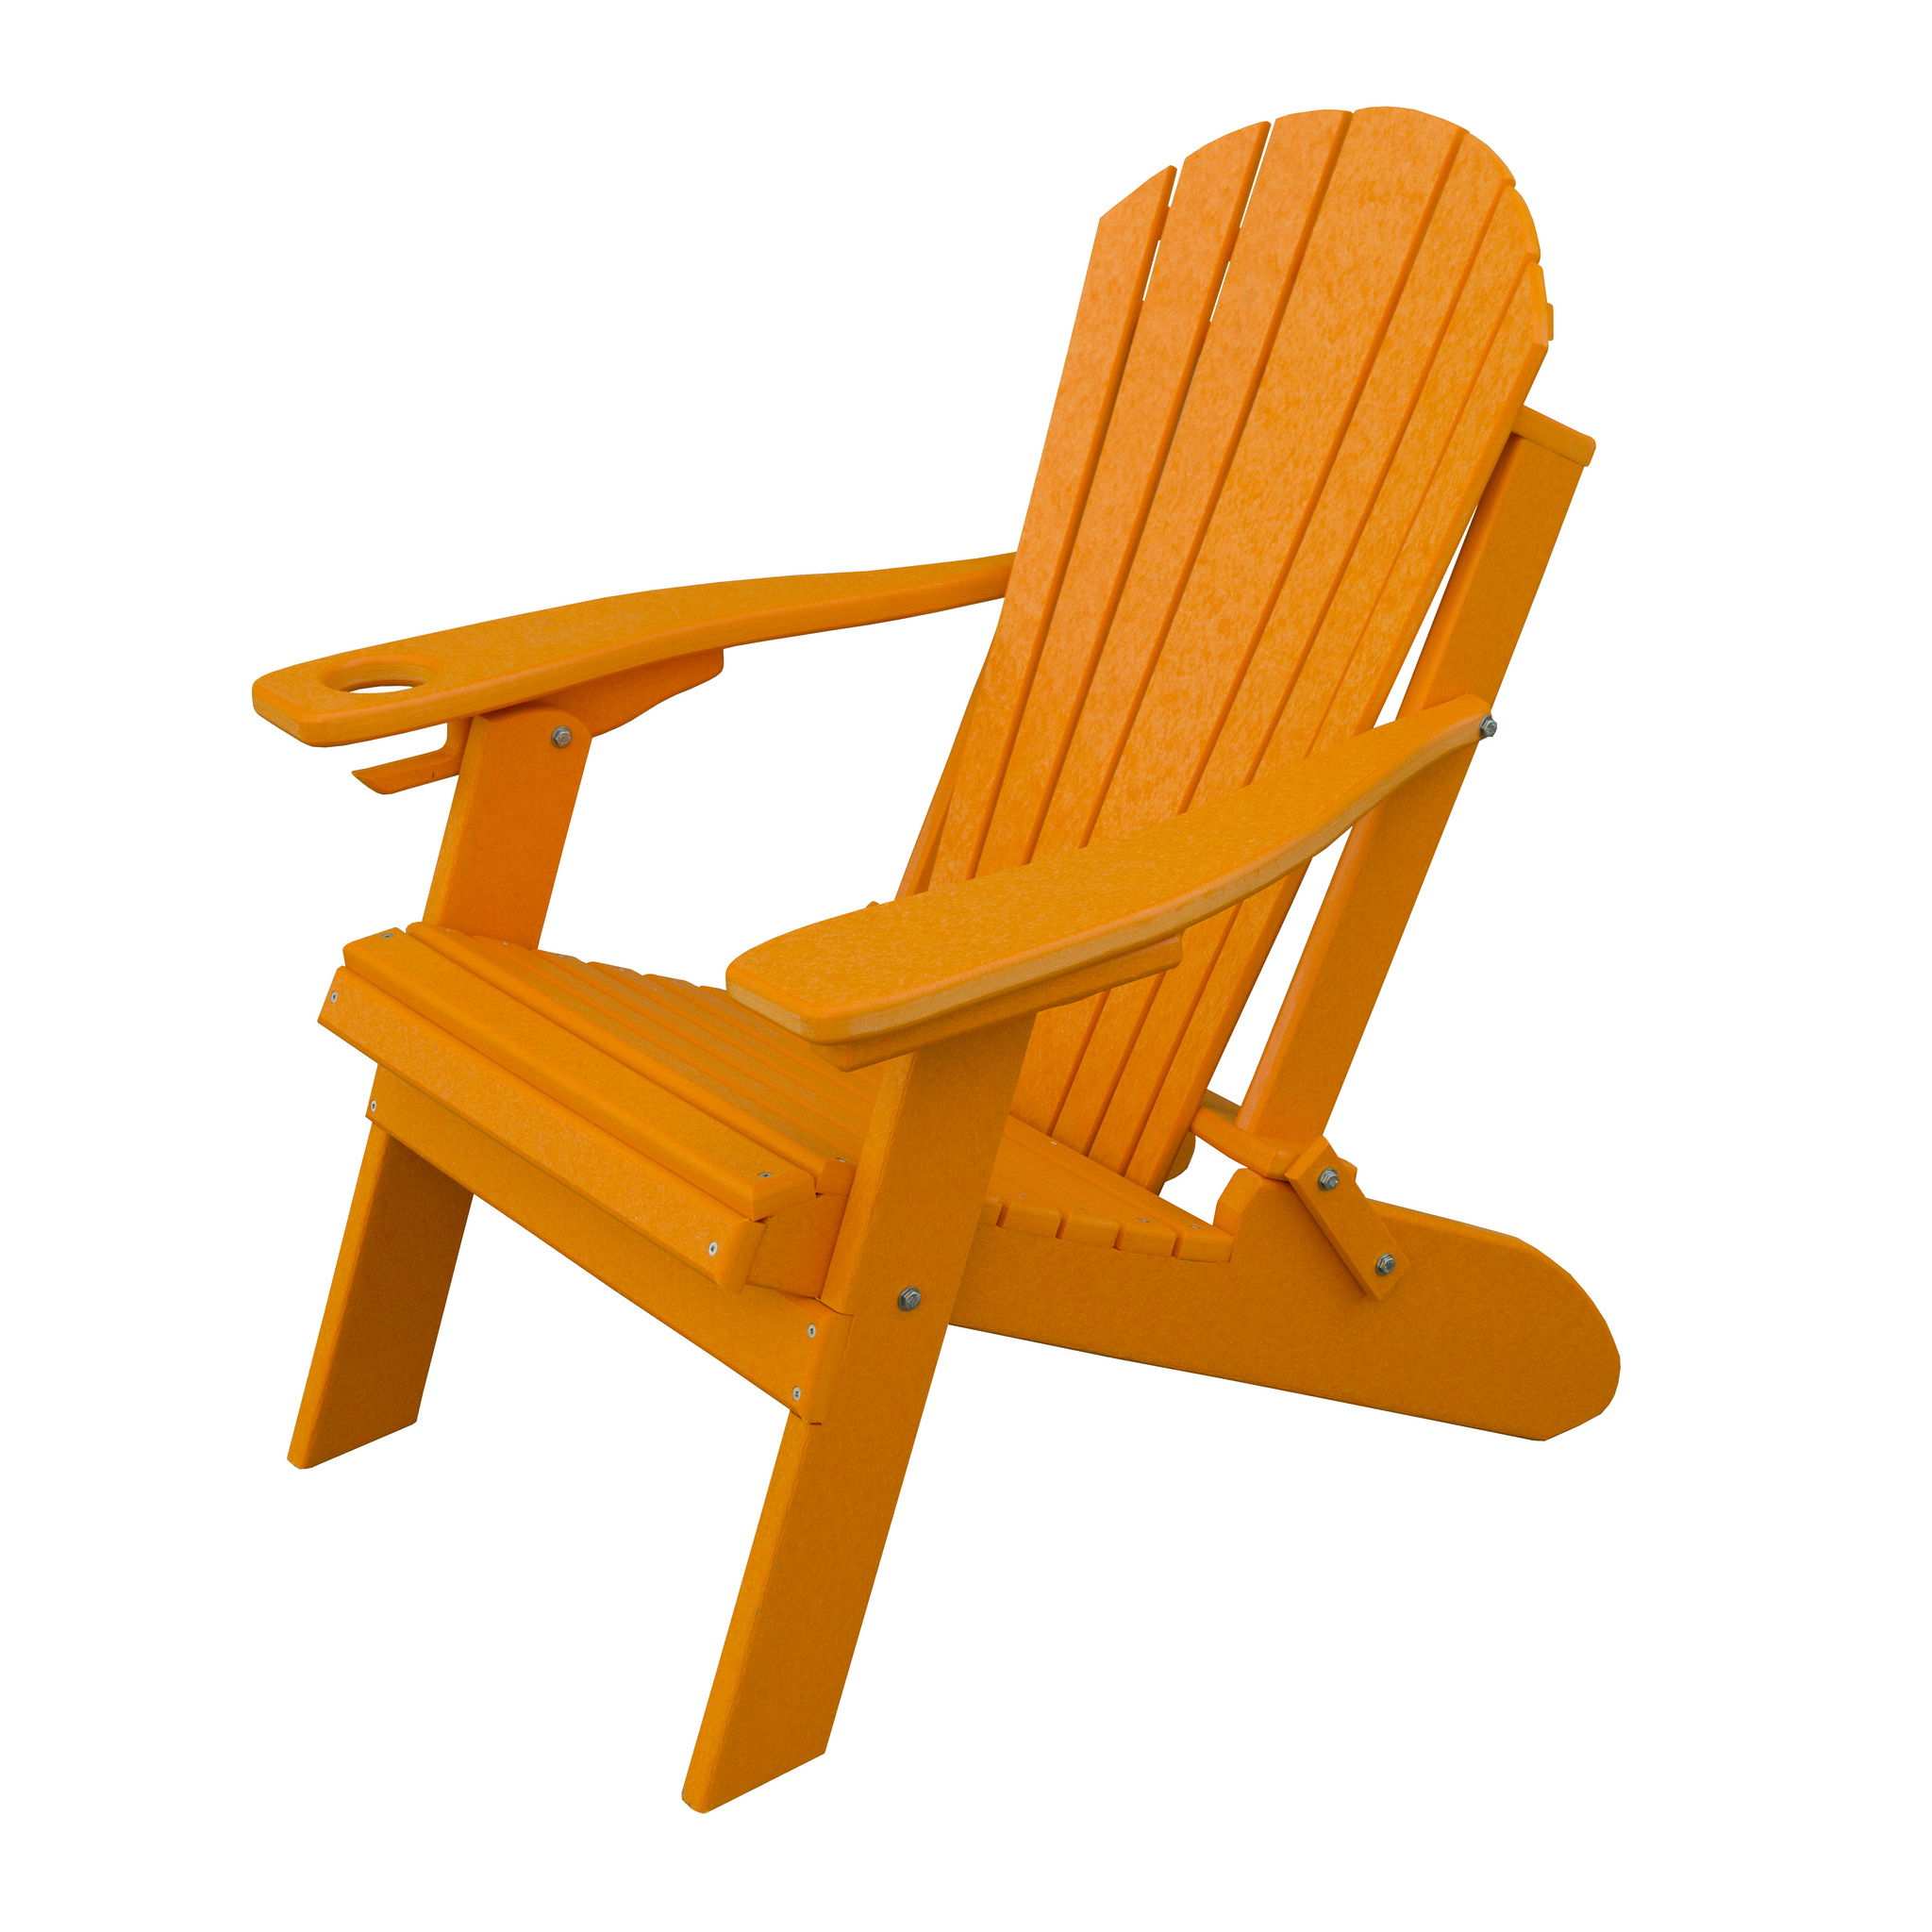 Furniture Barn USA® Poly Folding Adirondack Chair with Cup and Smart Phone Holder - Aruba Blue Color